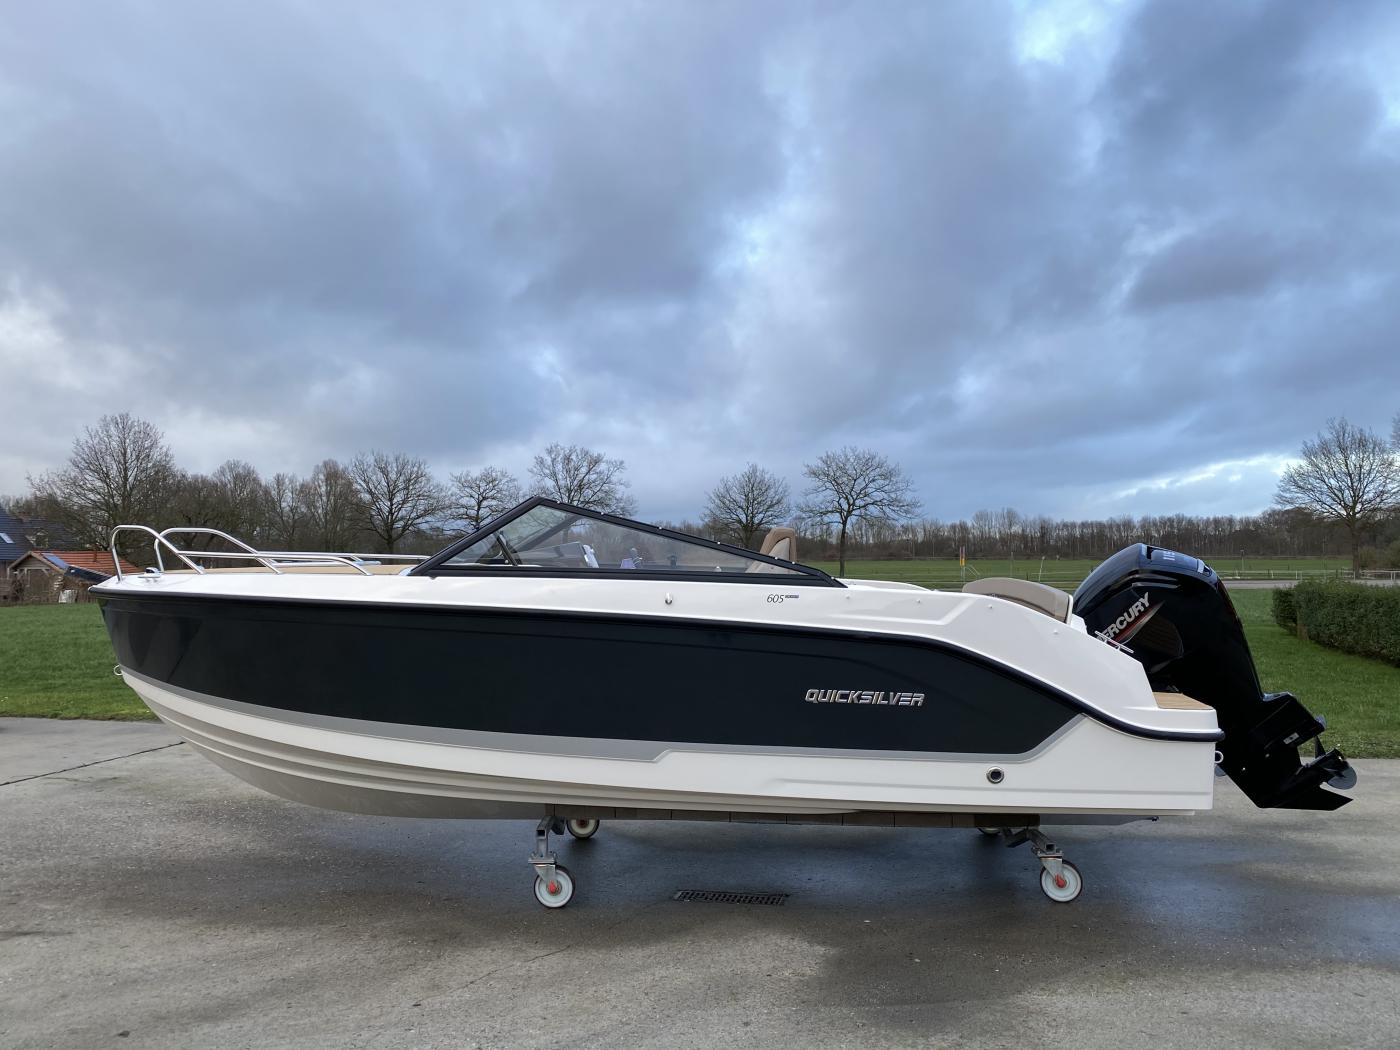 Te koop Quicksilver 605 Cruiser Sportcruisers | Bomert Watersport